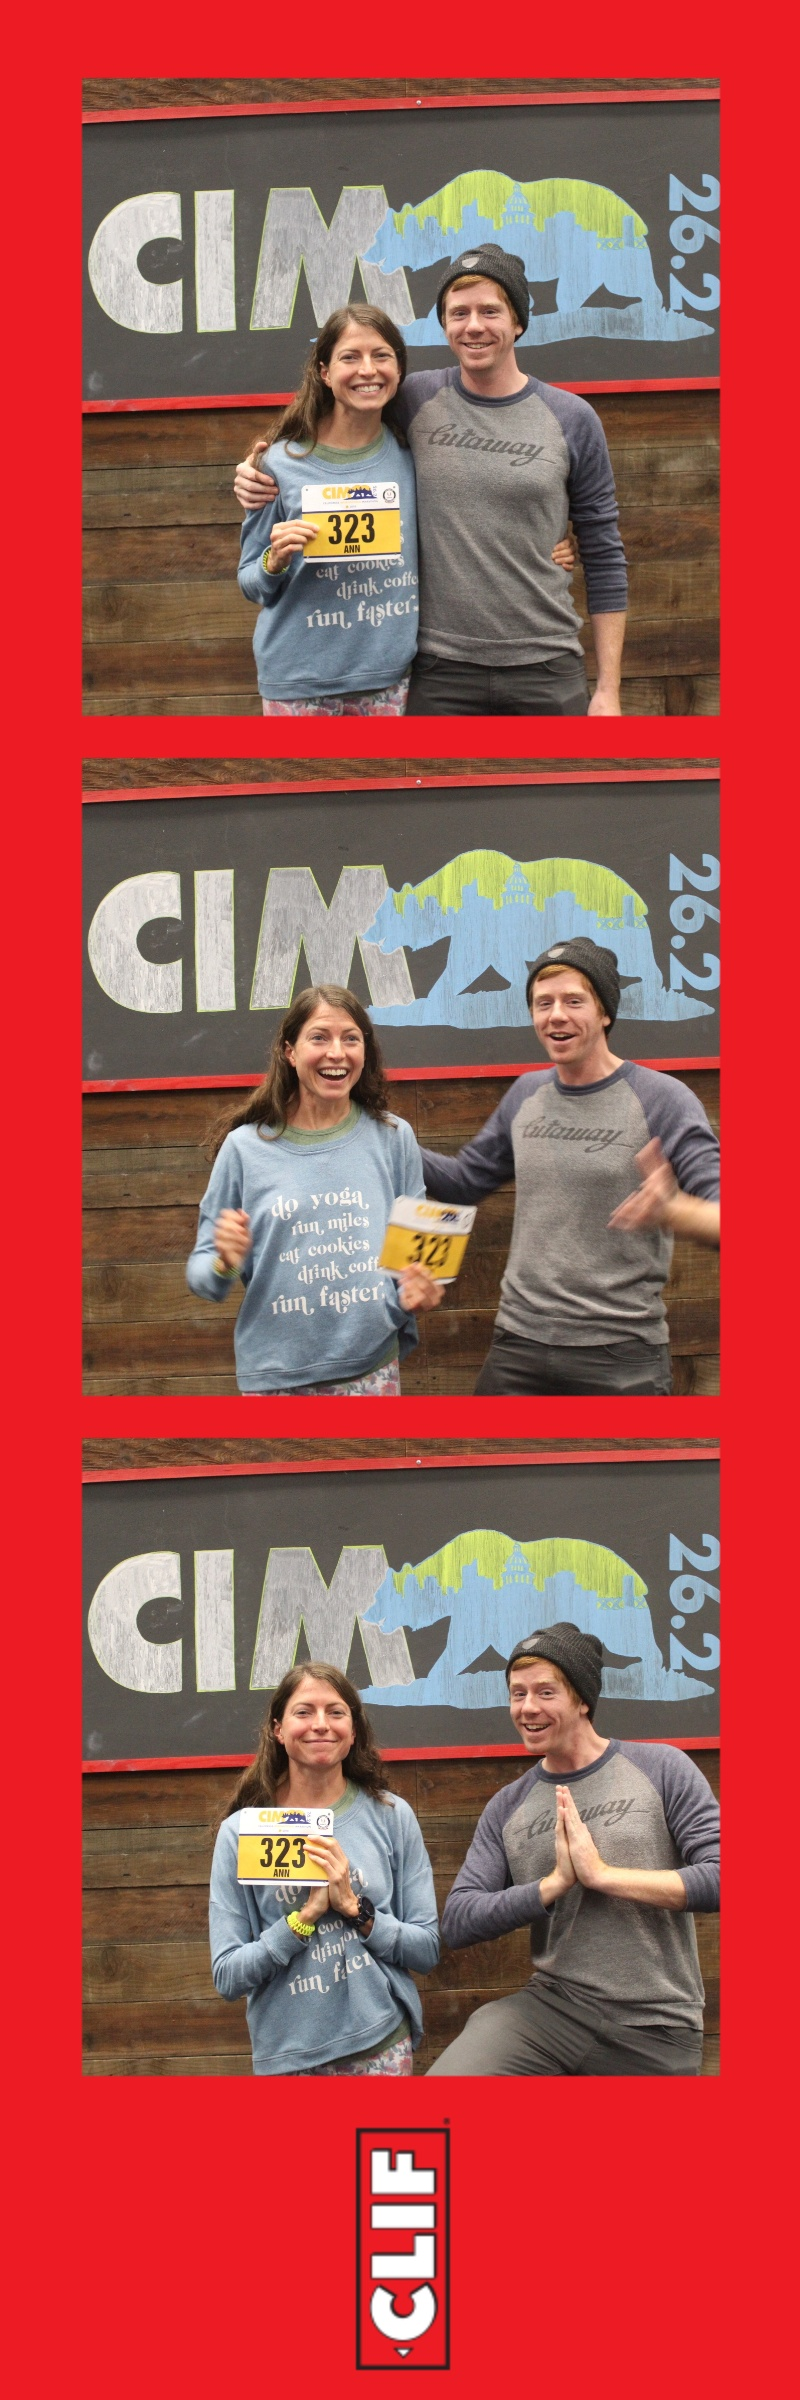 Thanks to Clif Bar for the photo booth at the CIM Expo! For every set of photos, they donated $5 to support the homeless. Also thanks to my husband Phillip for seriously being the best husband ever on this trip and always!